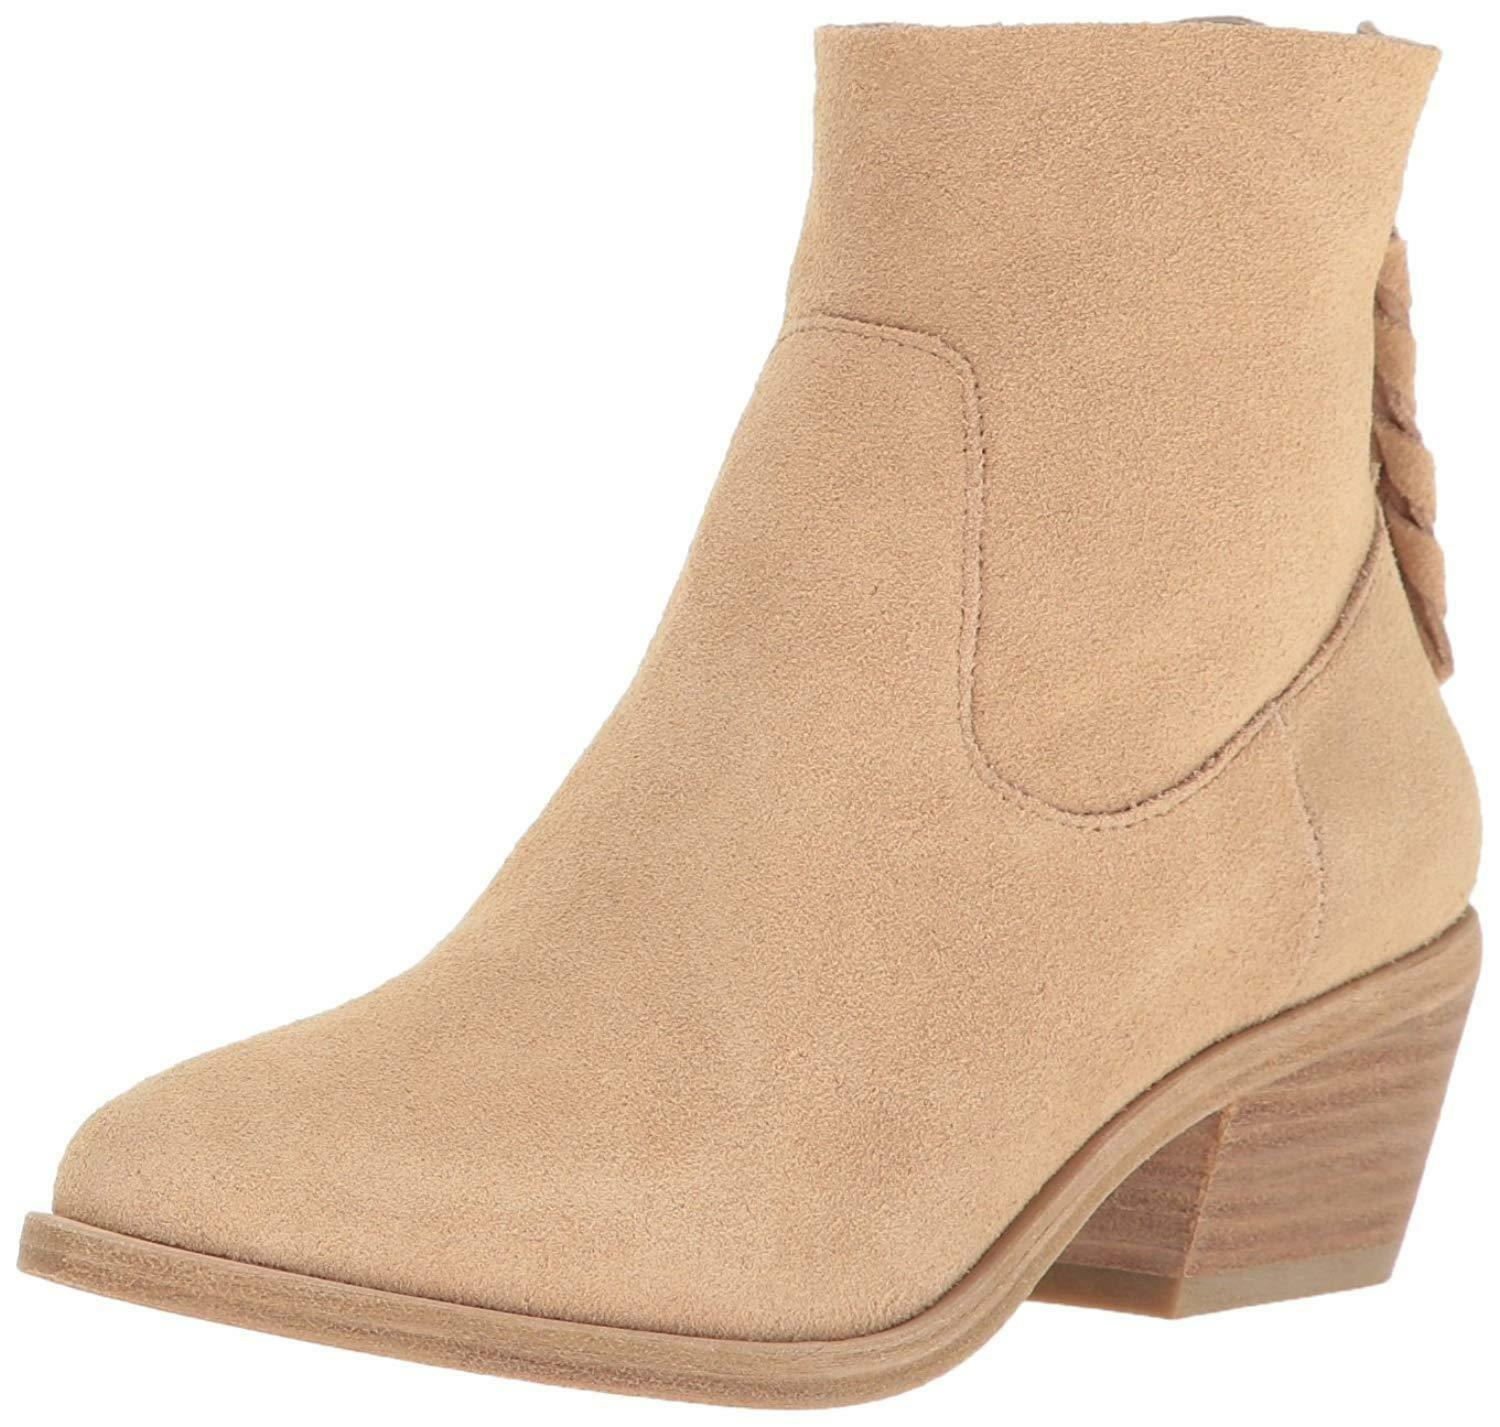 Joie Womens Adria Suede Ankle Booties Boots Powder 38.5